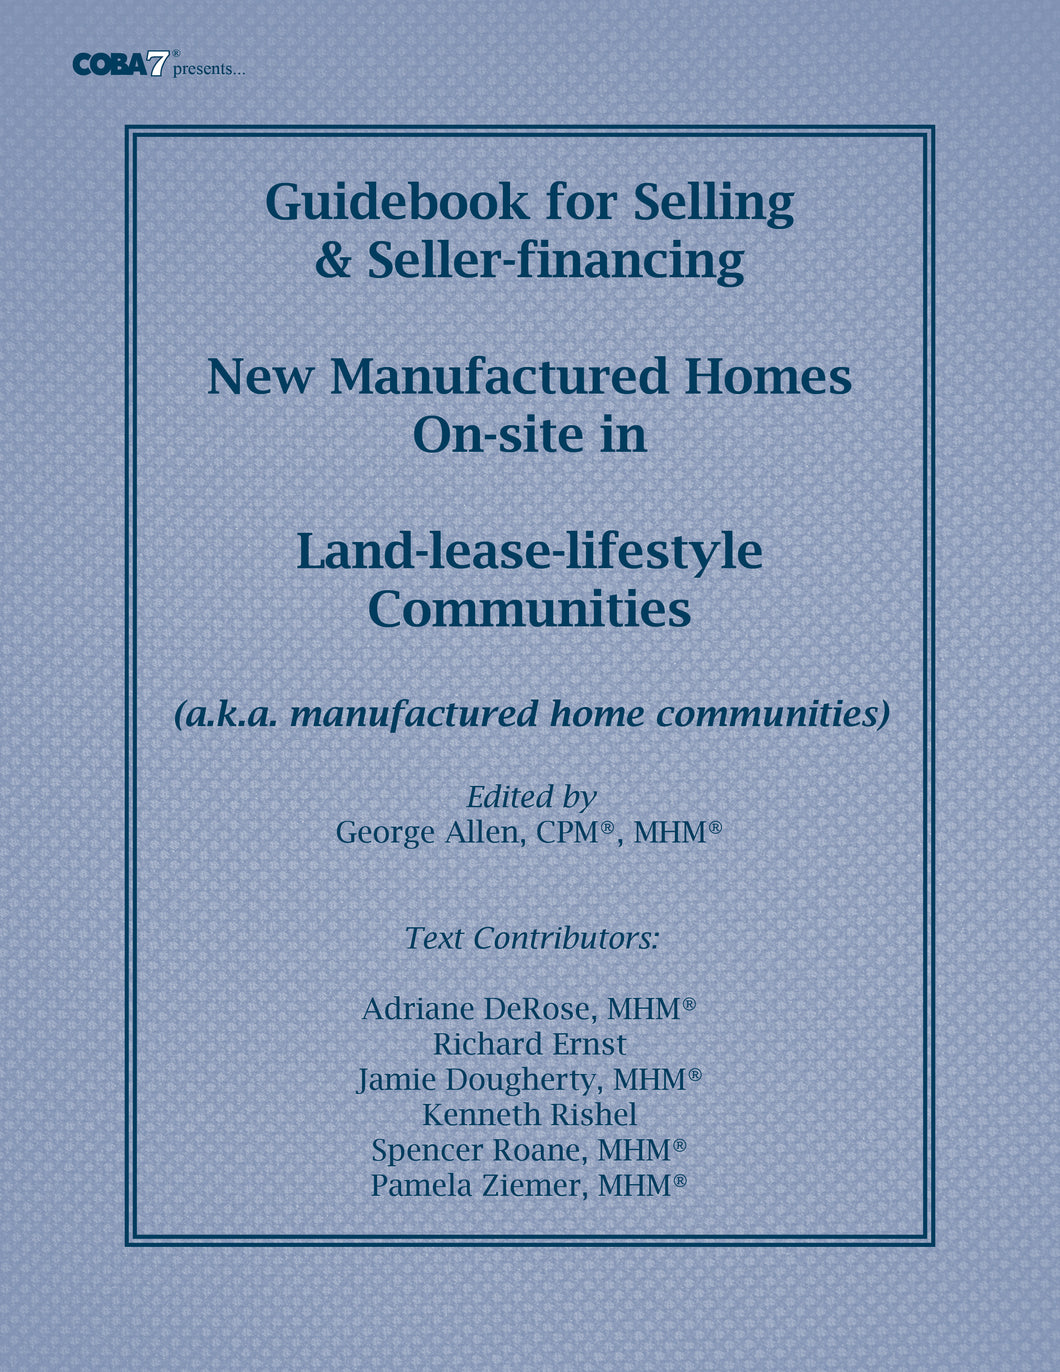 GUIDEBOOK FOR SELLING MANUFACTURED HOMES